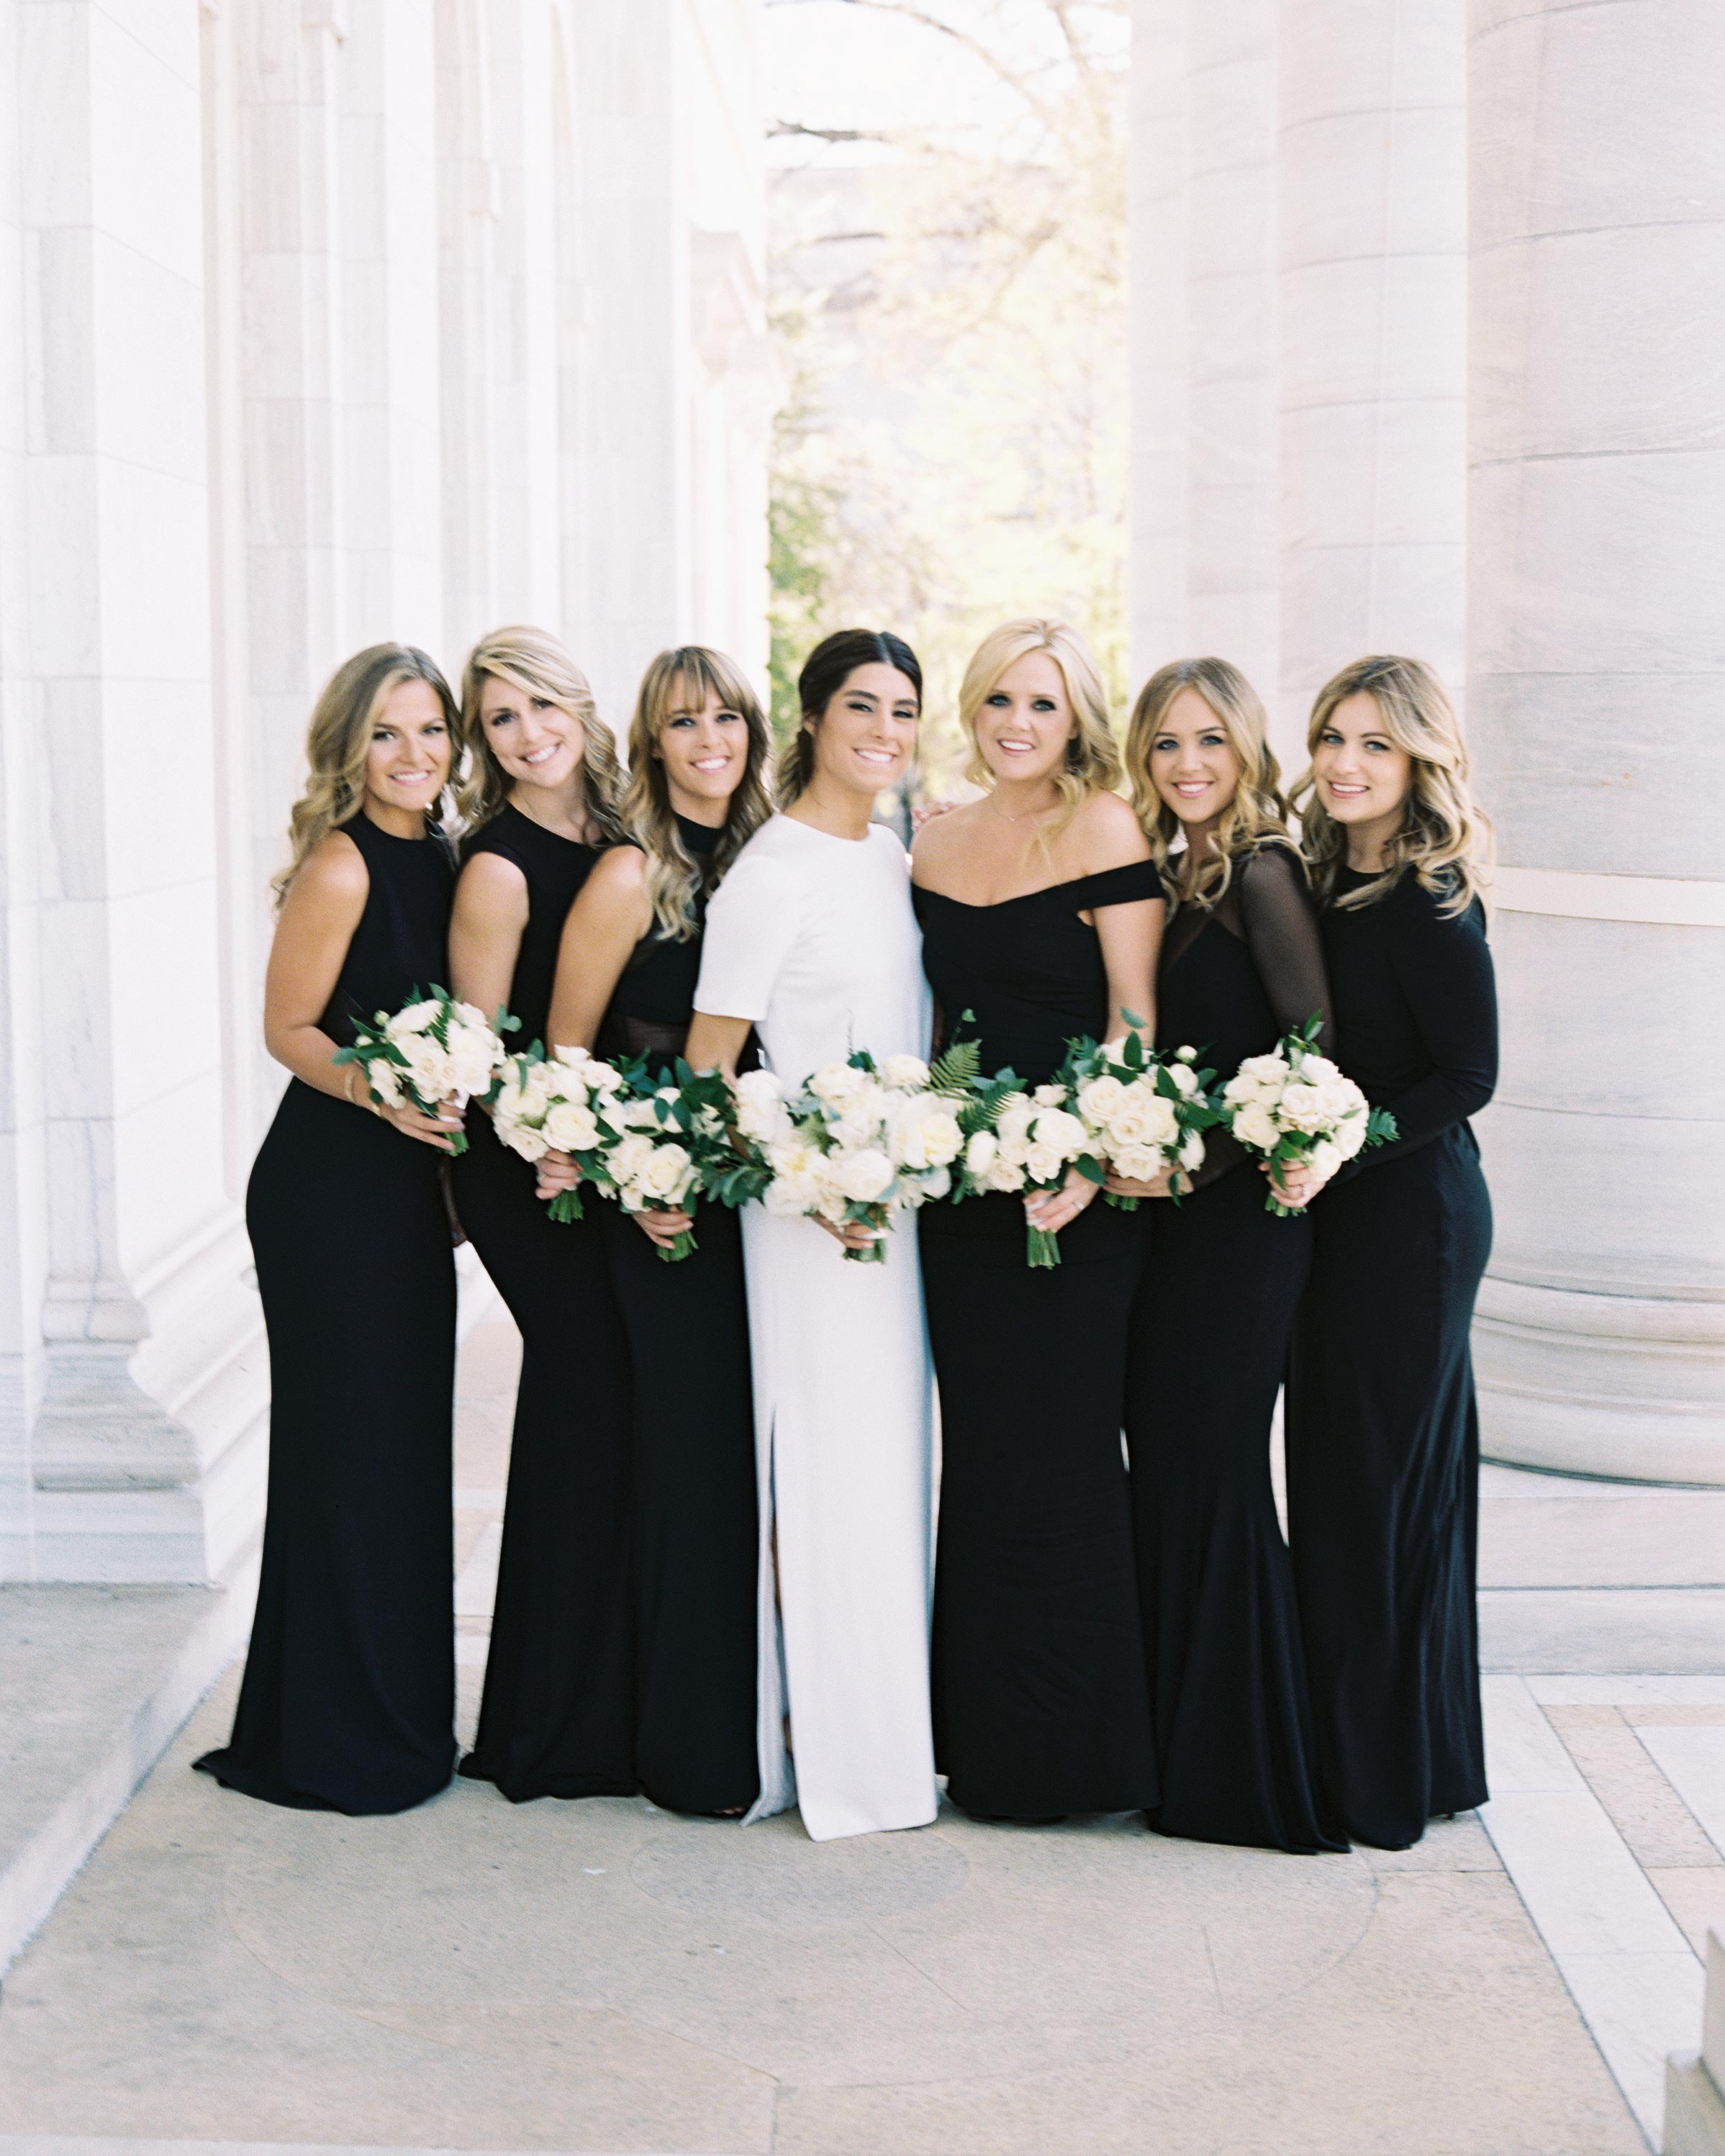 arielle-matt-wedding-bridesmaids-144-6134241-0716.jpg